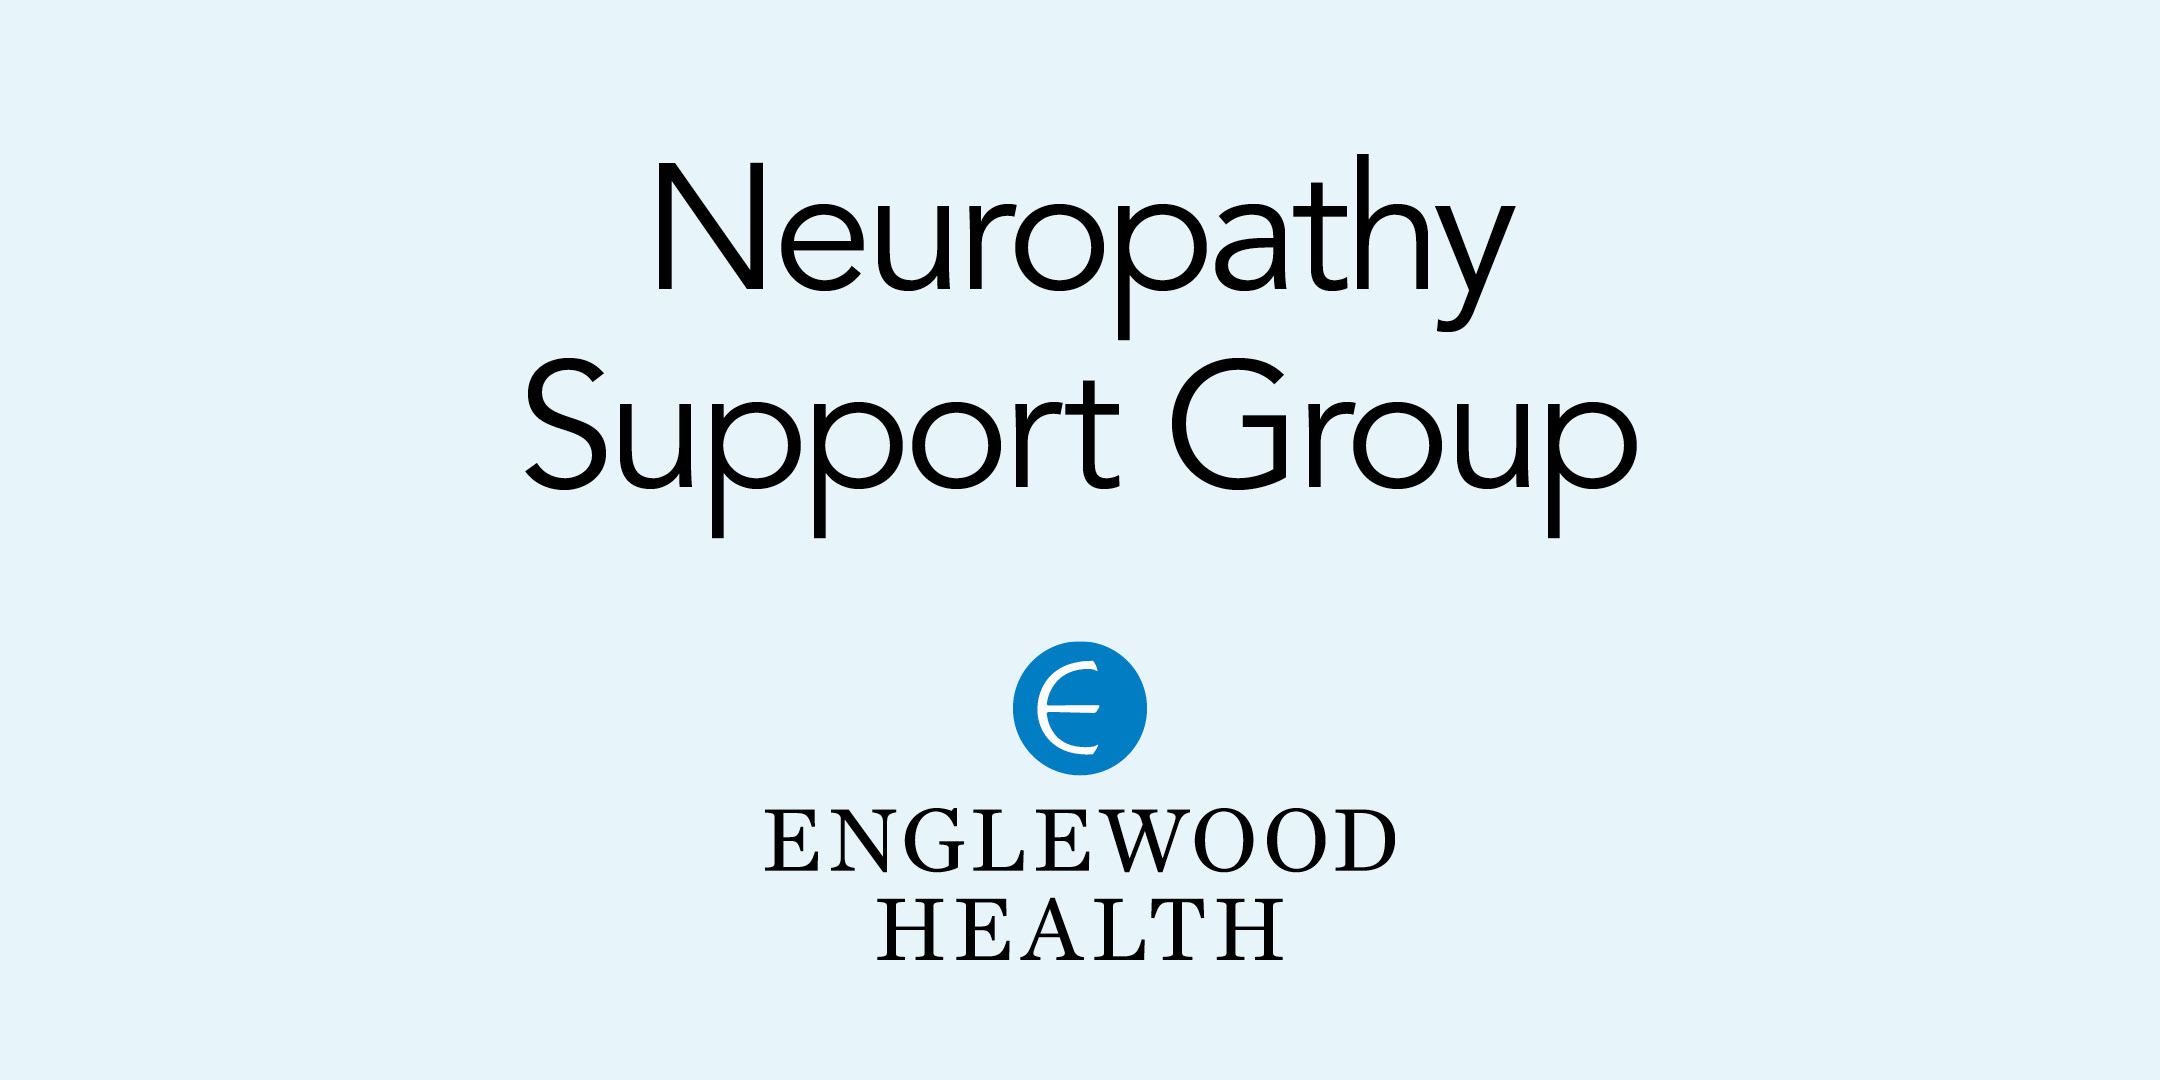 Neuropathy Support Group